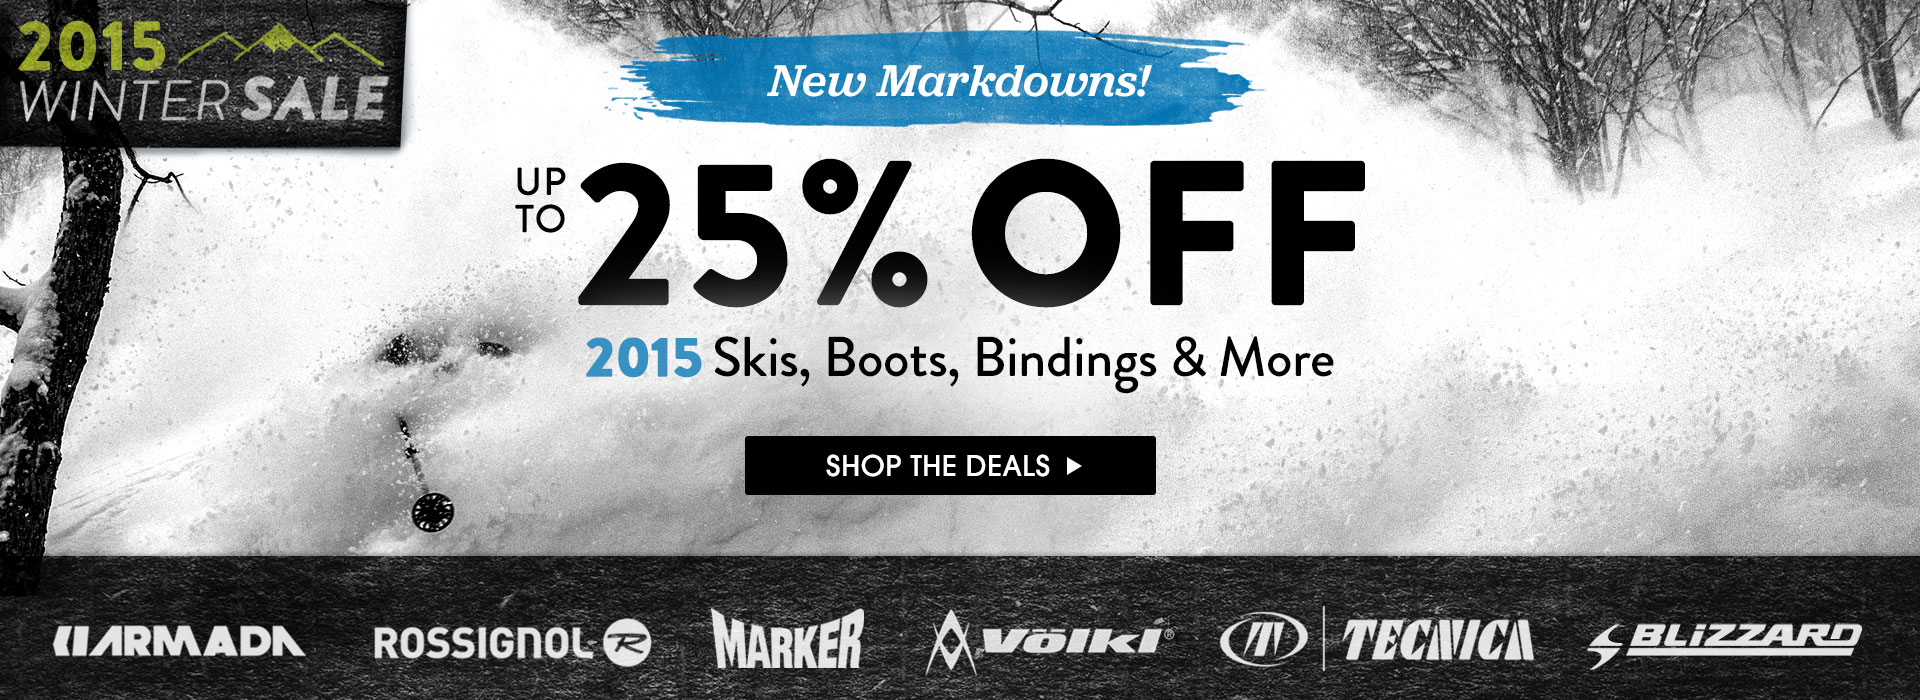 2015 Winter Sale. Save Up To 25% Off Select Ski Brands!